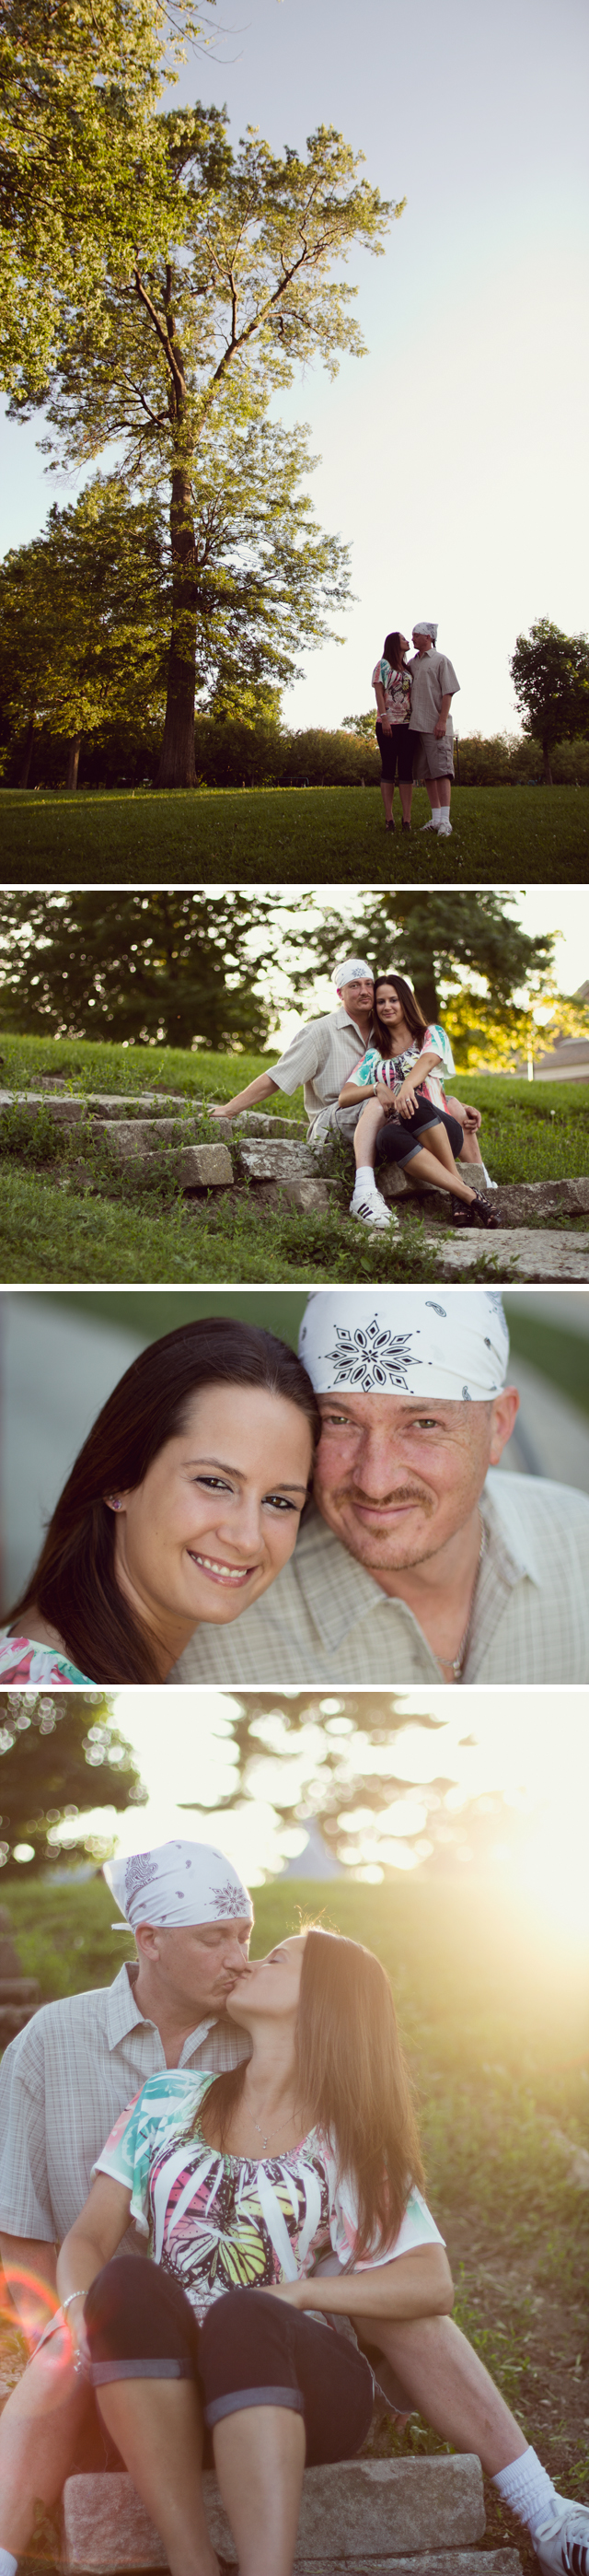 indianapolis engagement photo